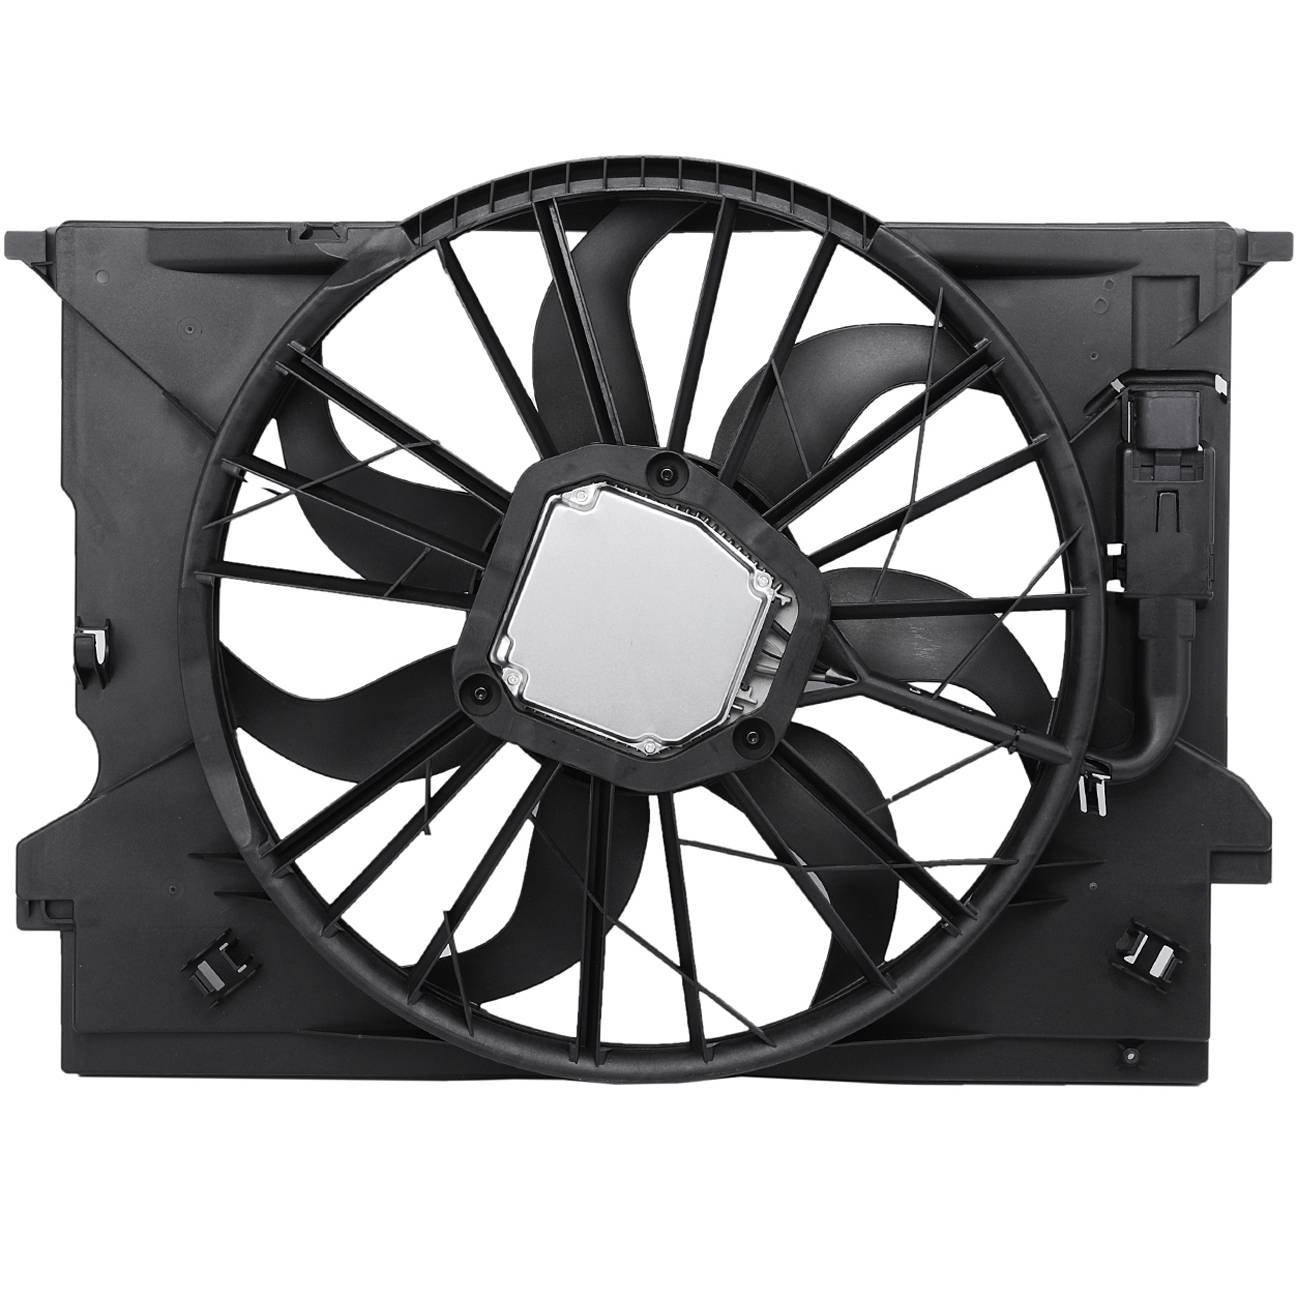 topaz 2115001693 radiator cooling fan assembly for mercedes benz Mercedes E350 Sport topaz 2115001693 radiator cooling fan assembly for mercedes benz walmart